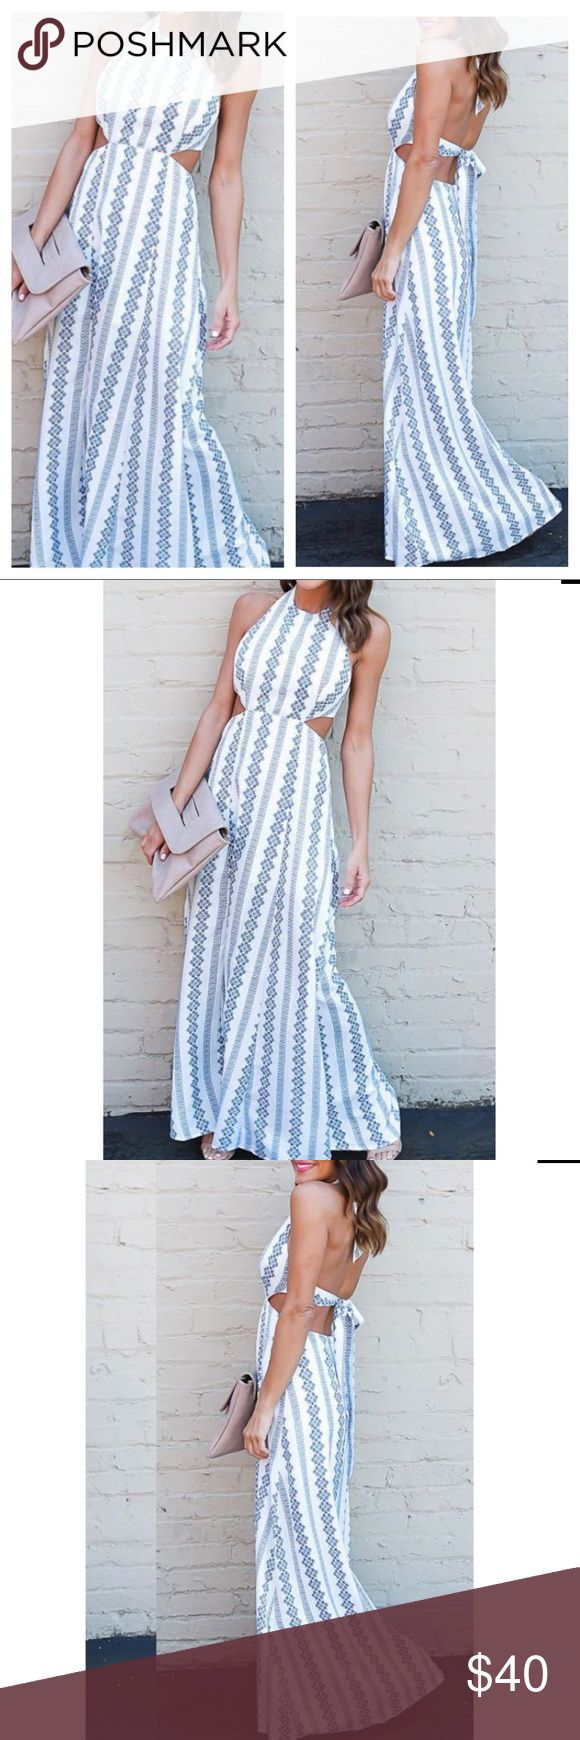 🍾SUMMER 17 boho Maxi dress🍾 Summer 2017 boho halter maxi dress🍾 Backless and cut out detail🍾 Paisley geometric mandala print🍾 Ask questions due to posh no return policy🍾 Spend $75 get free shipping🍾  If you like LF urban outfitters free people  asos brandy Melville style this dress is for you!   🌟suggested seller  🌟5 star seller 🌟host pick seller DIVIINE Dresses Maxi